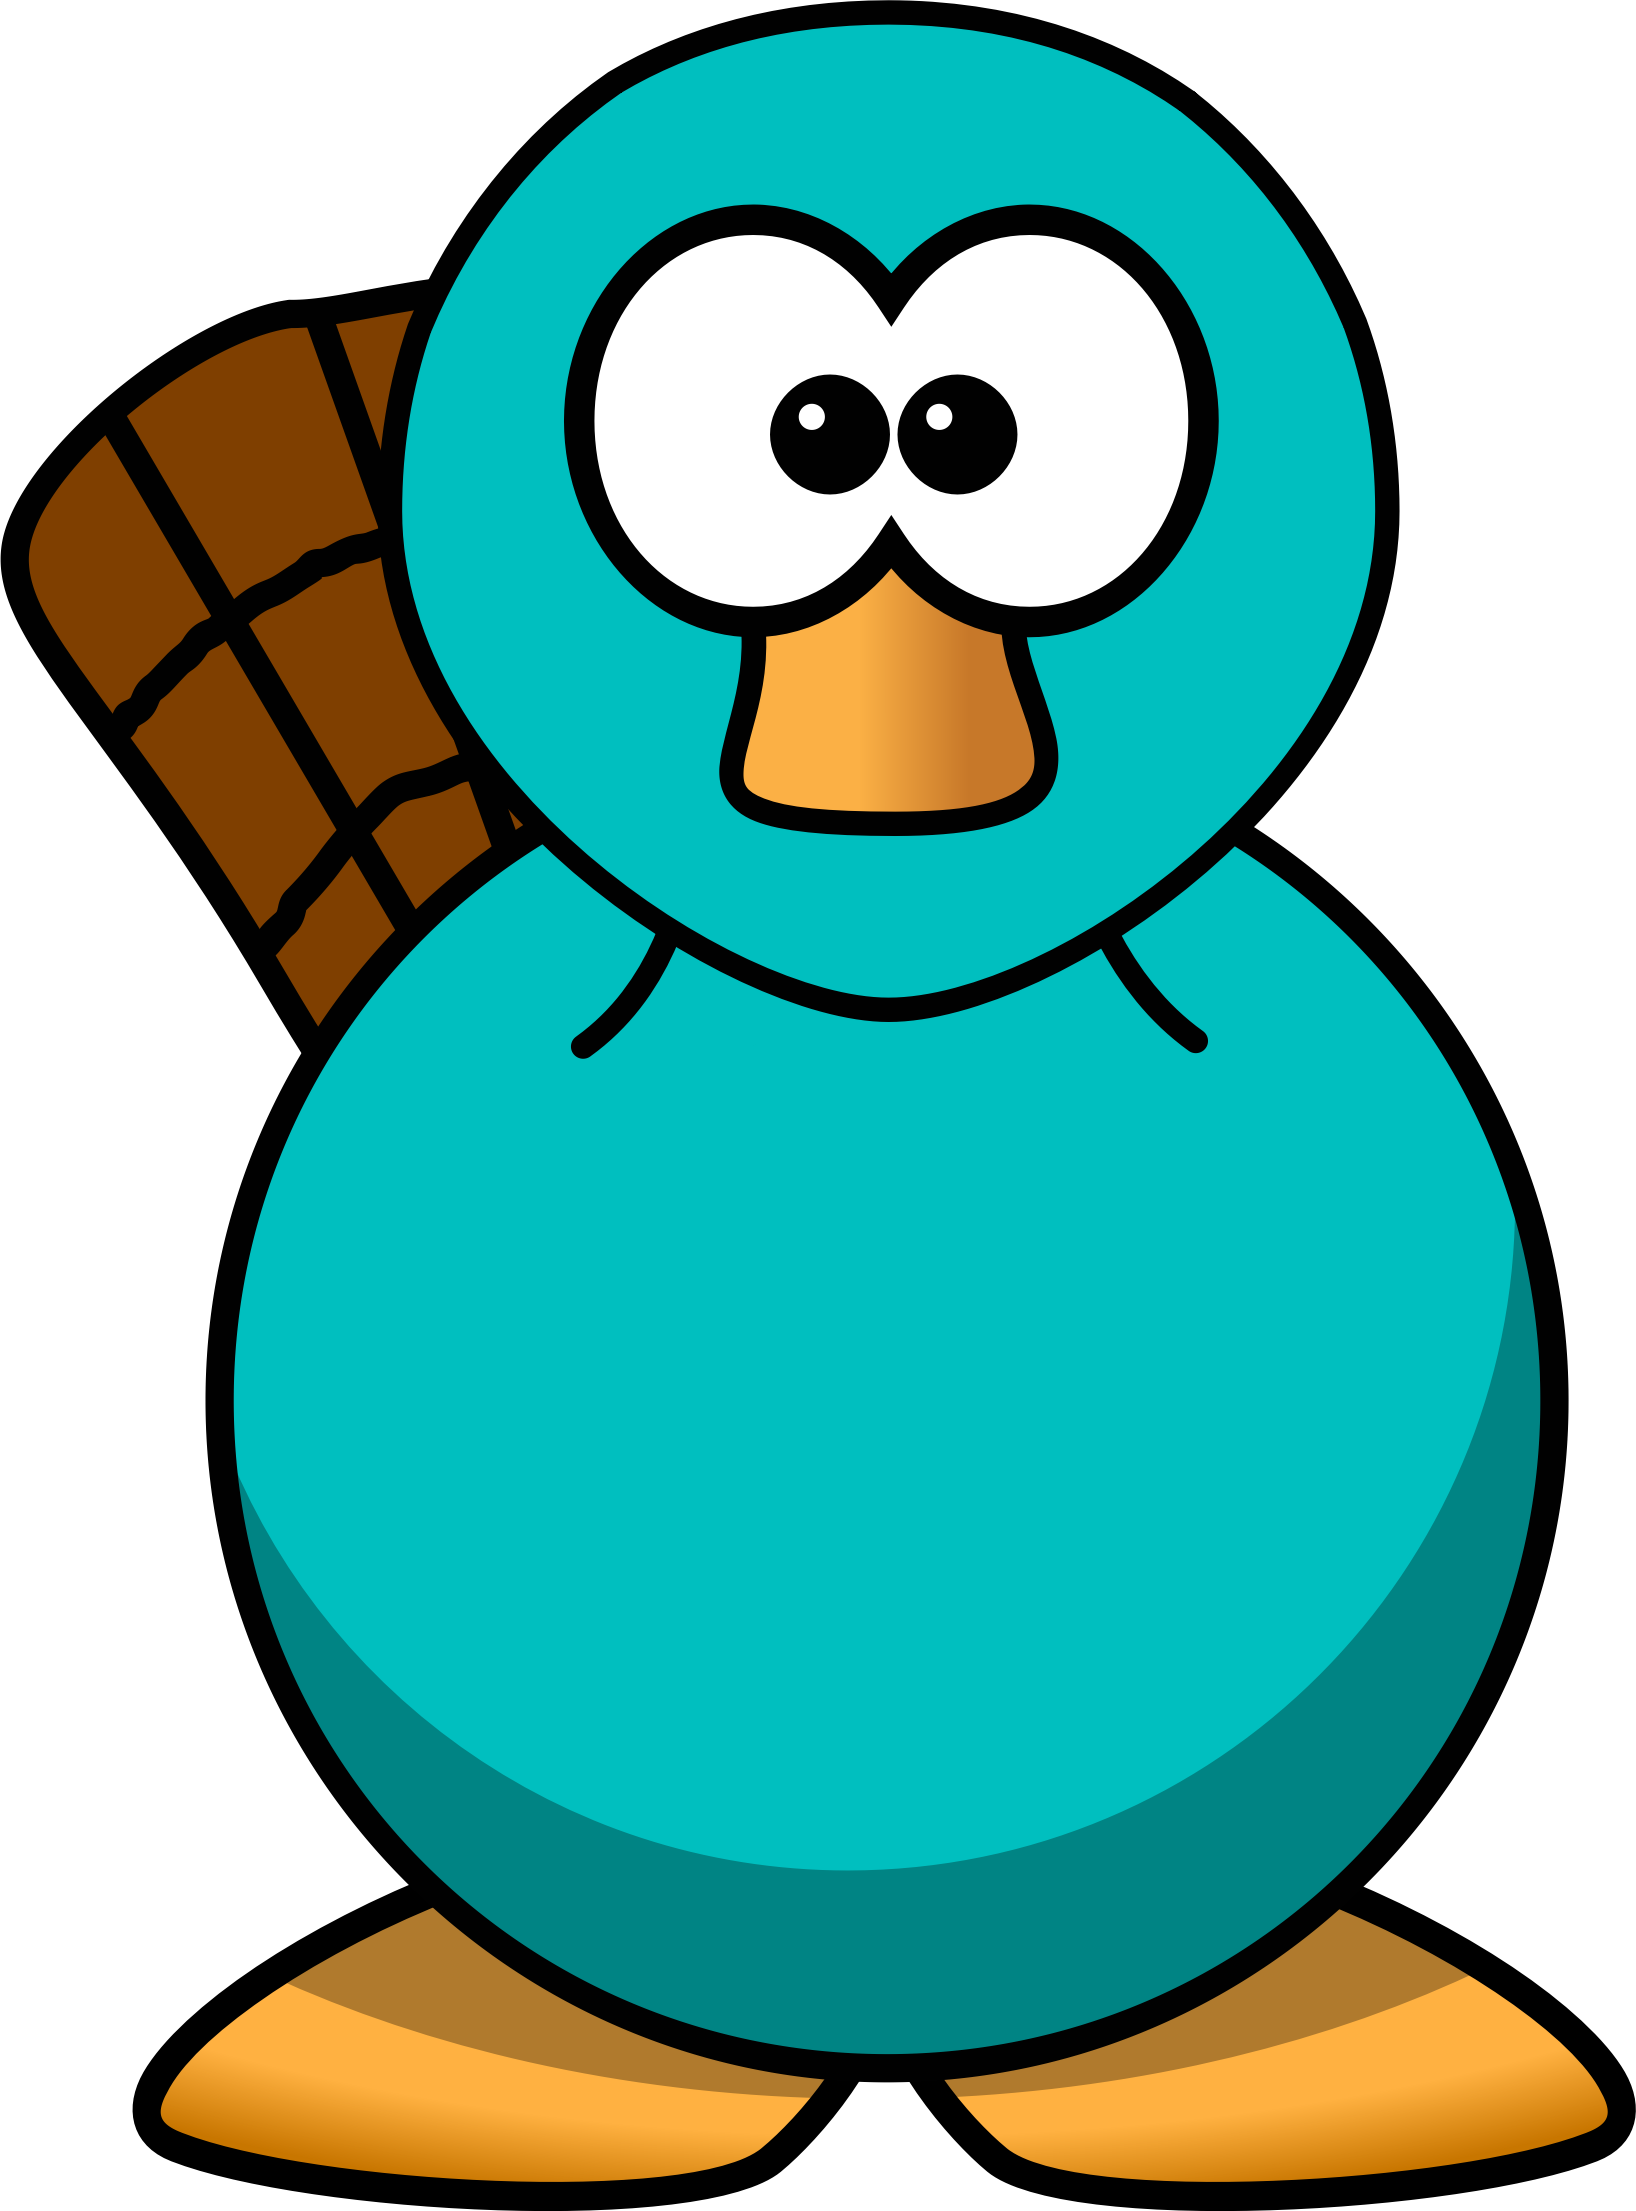 Clipart cartoon platypus teal